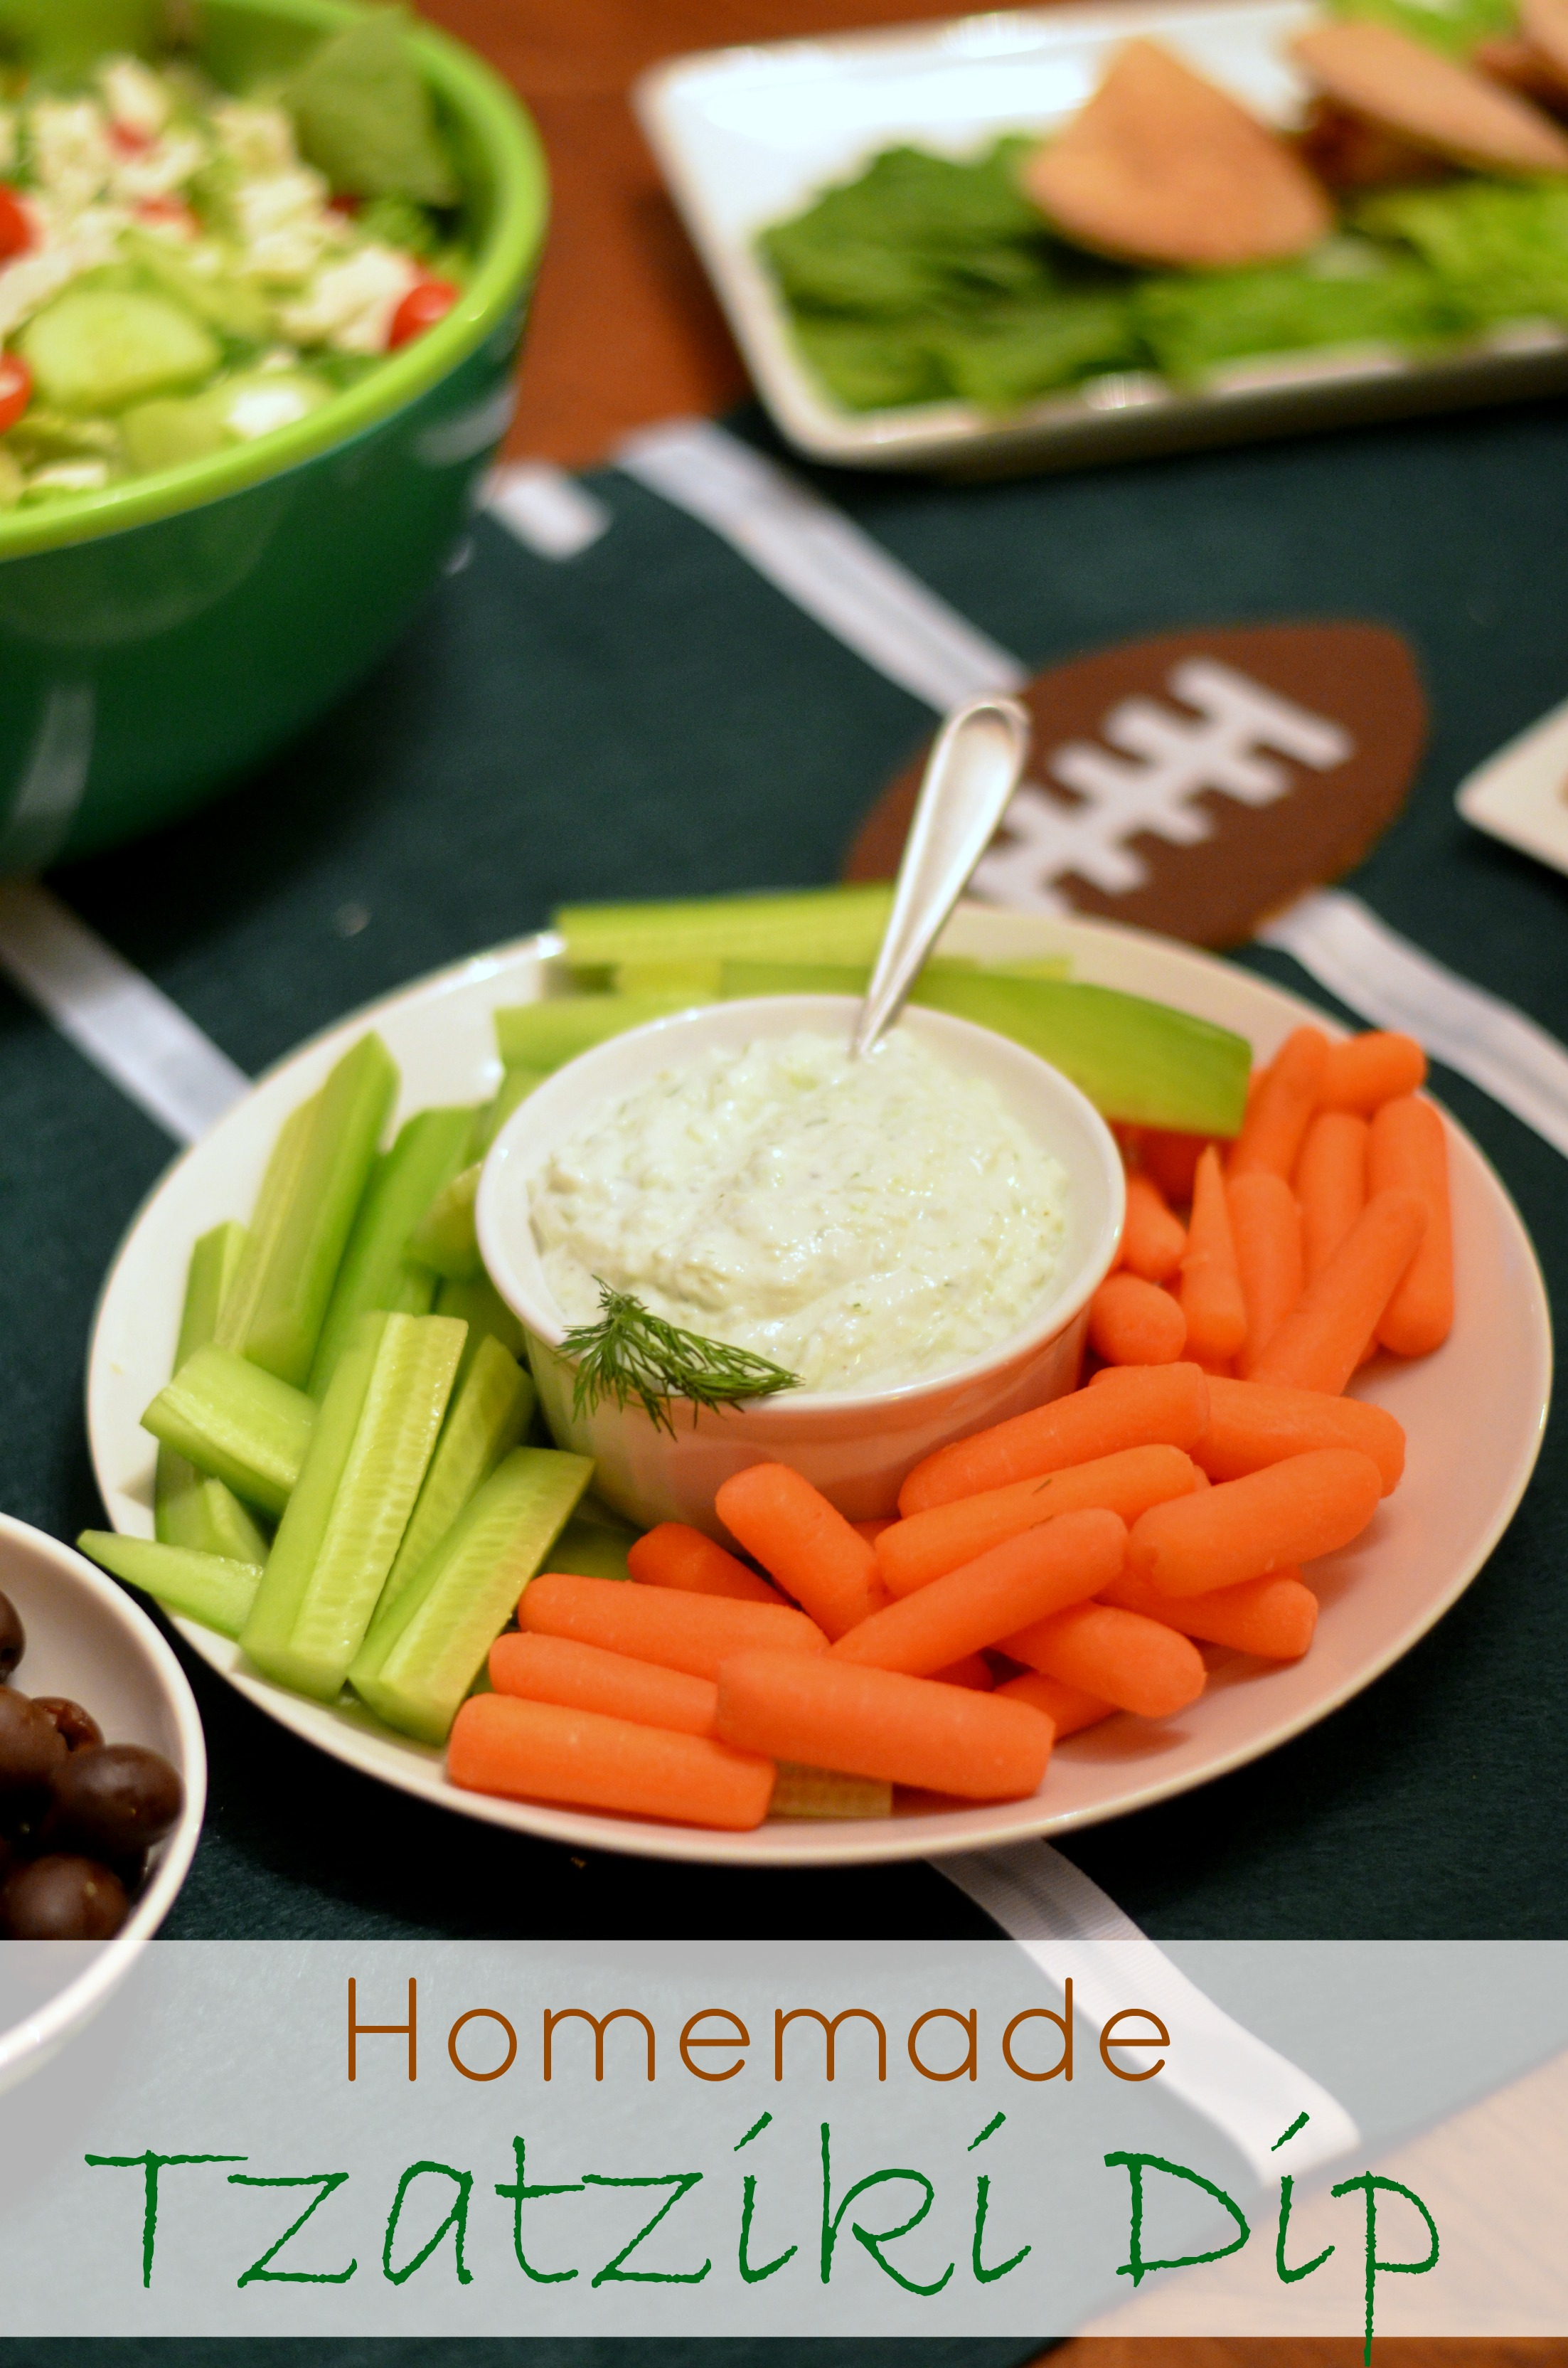 Homemade Tzatziki Dip Recipe